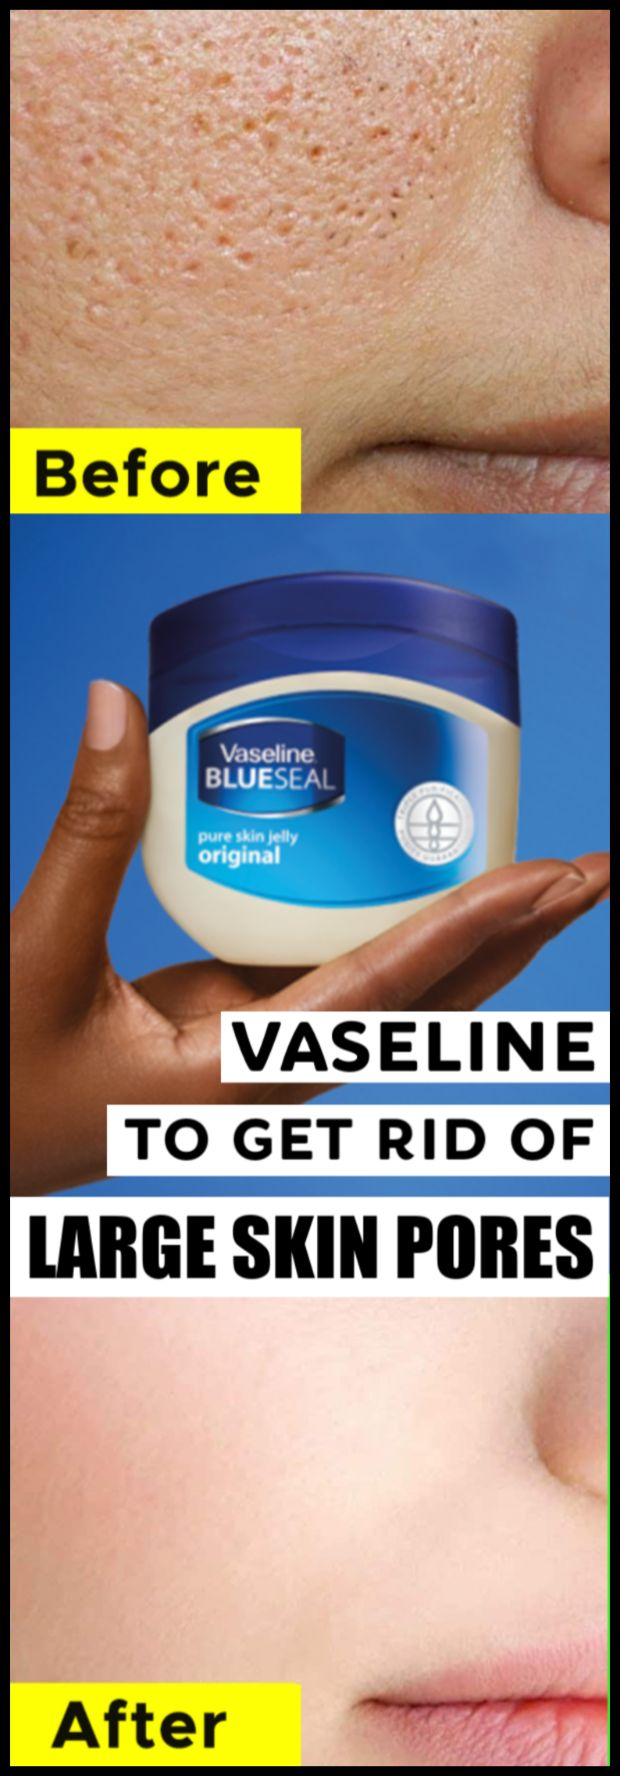 Use vaseline to get rid of large open skin pores in just 5 minutes